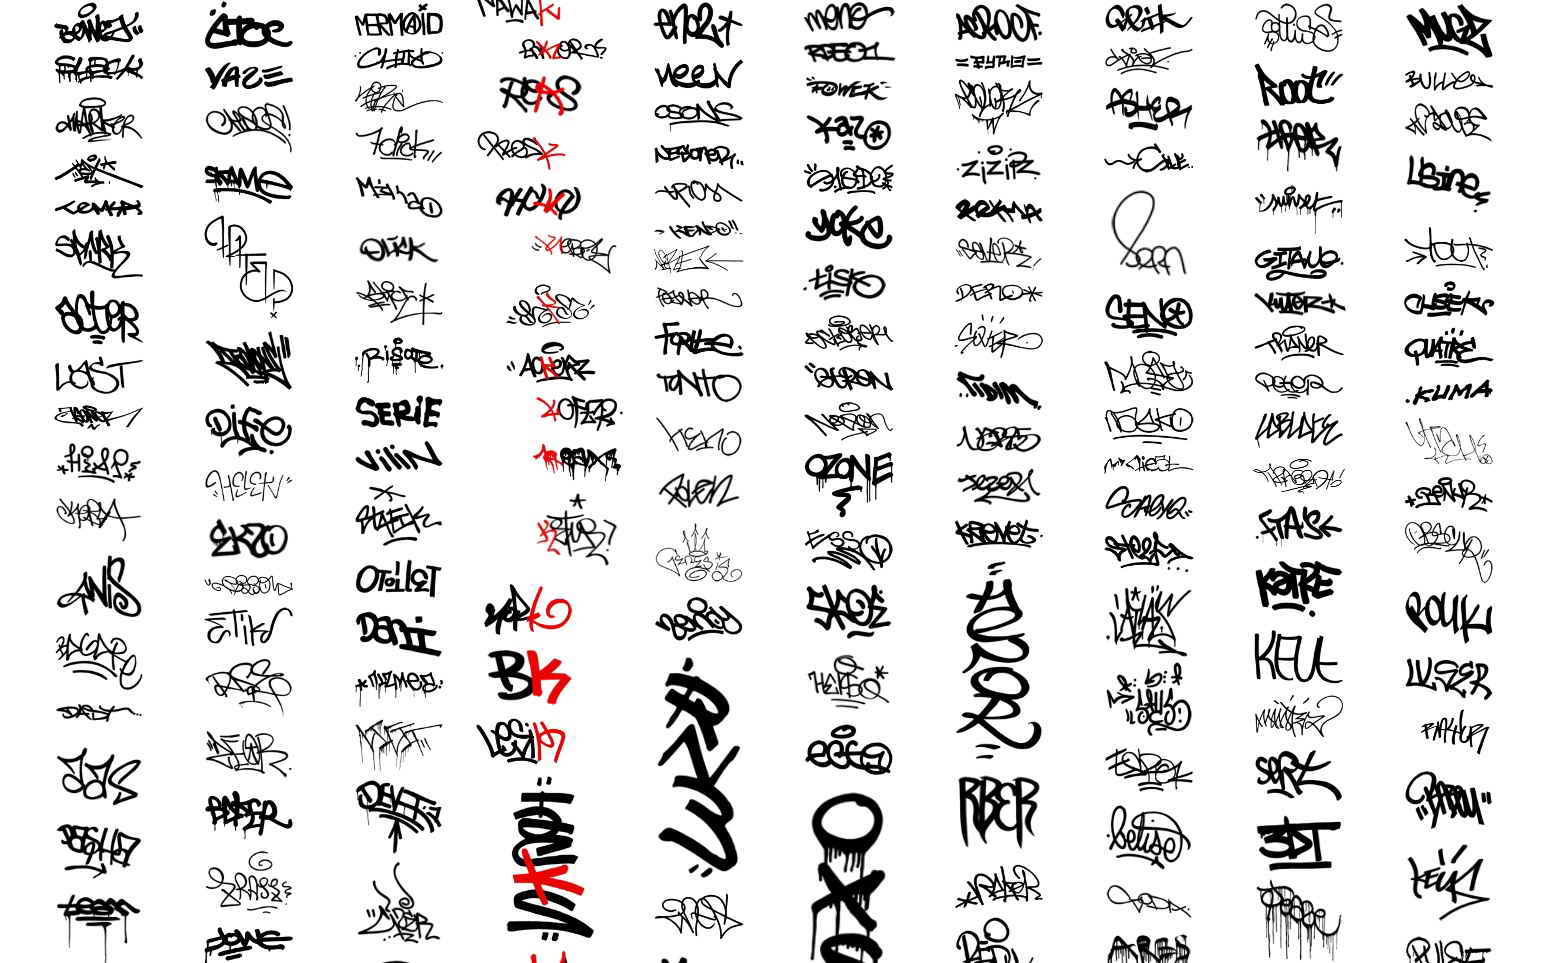 Tags Graffiti Fonts Graffiti Taxonomy